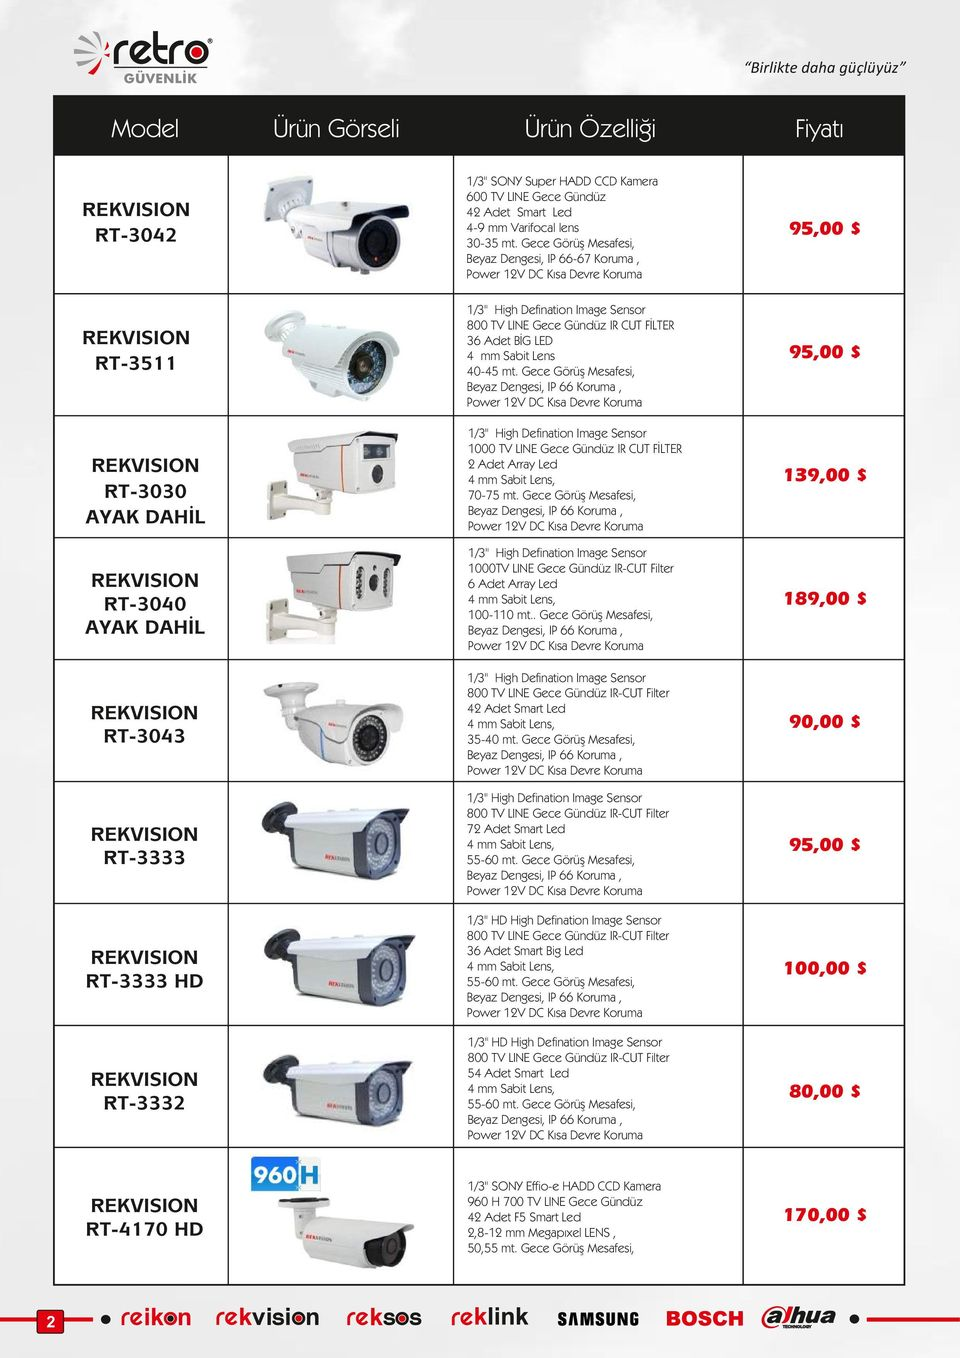 "Gece Görüş Mesafesi, 95,00 $ 1/3"" High Defination Image Sensor 1000 TV LINE Gece Gündüz IR CUT FİLTER 2 Adet Array Led 4 mm Sabit Lens, 70-75 mt."